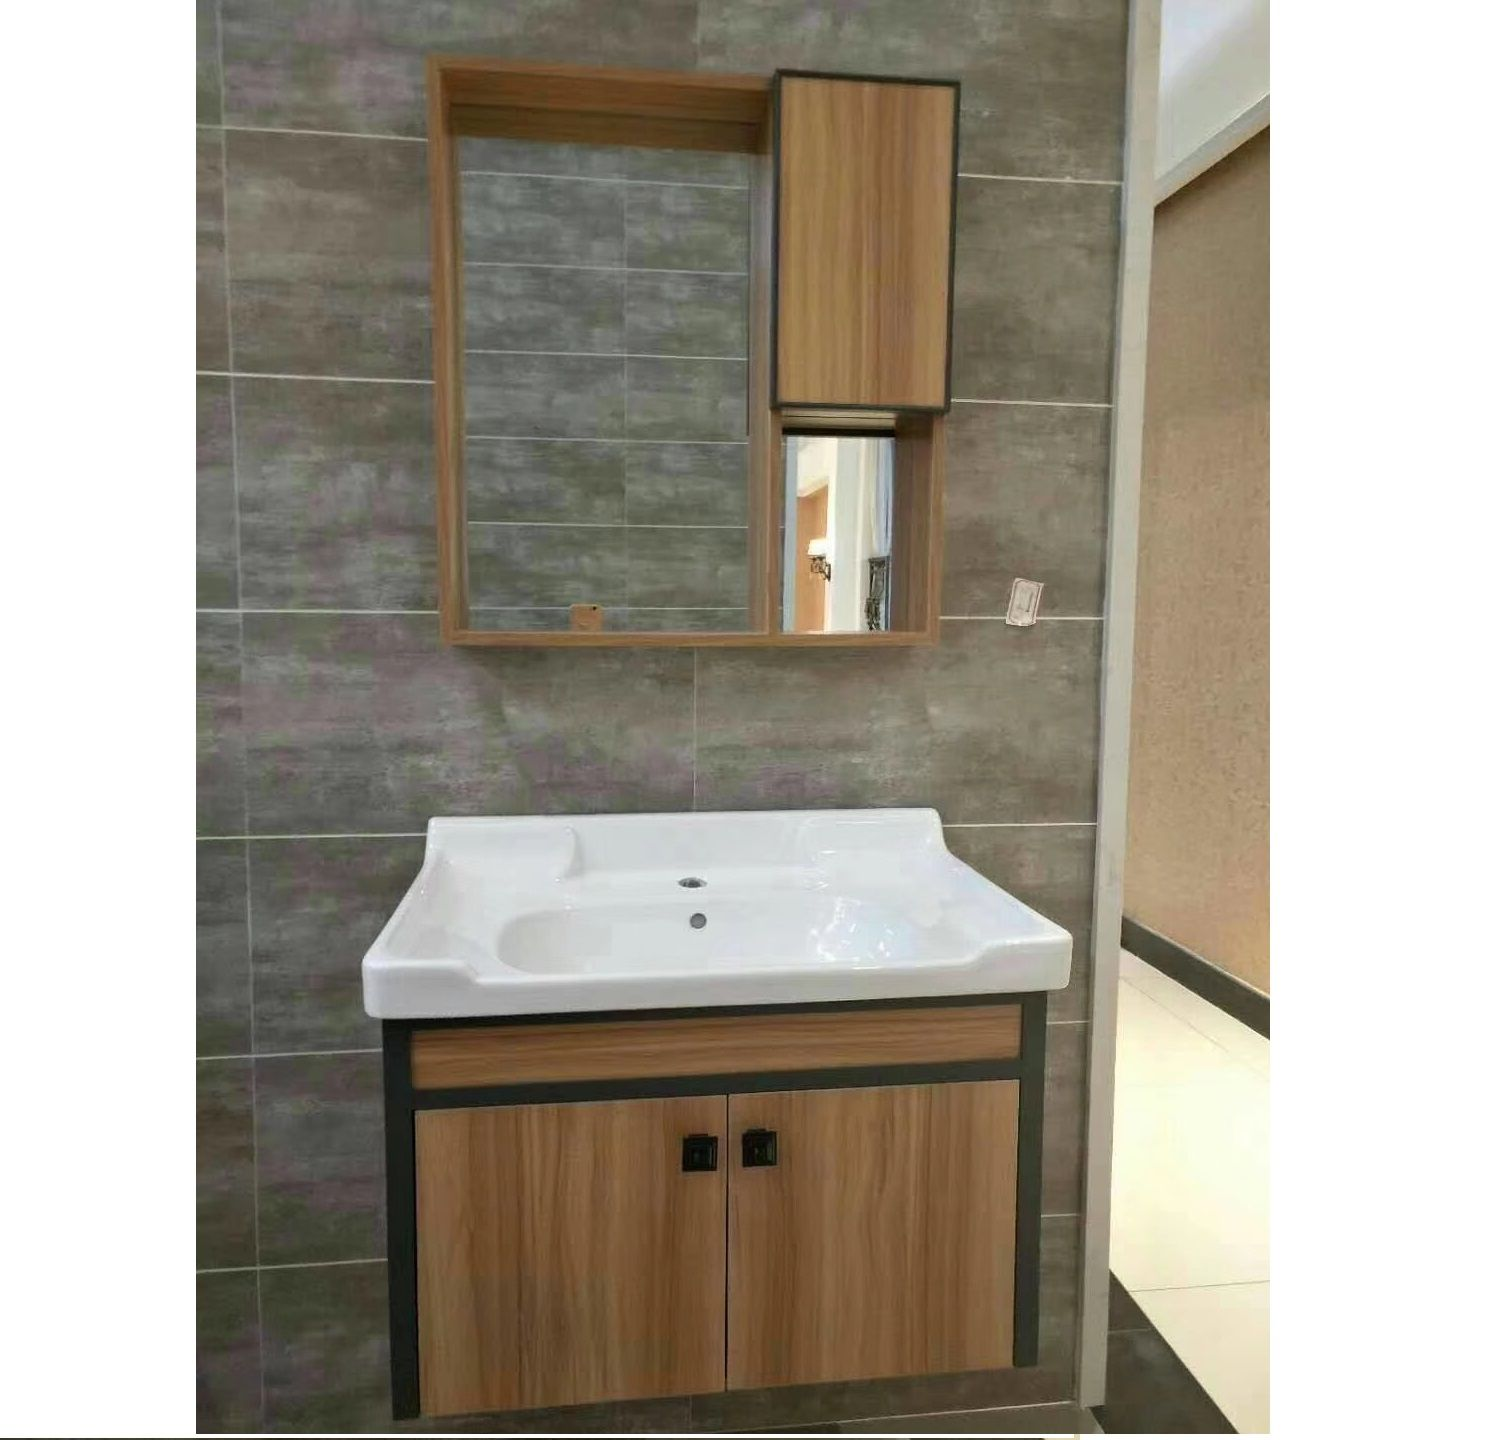 70Cm Bathroom Storage Cabinet With Side Cabinet Wood Pattern Finish